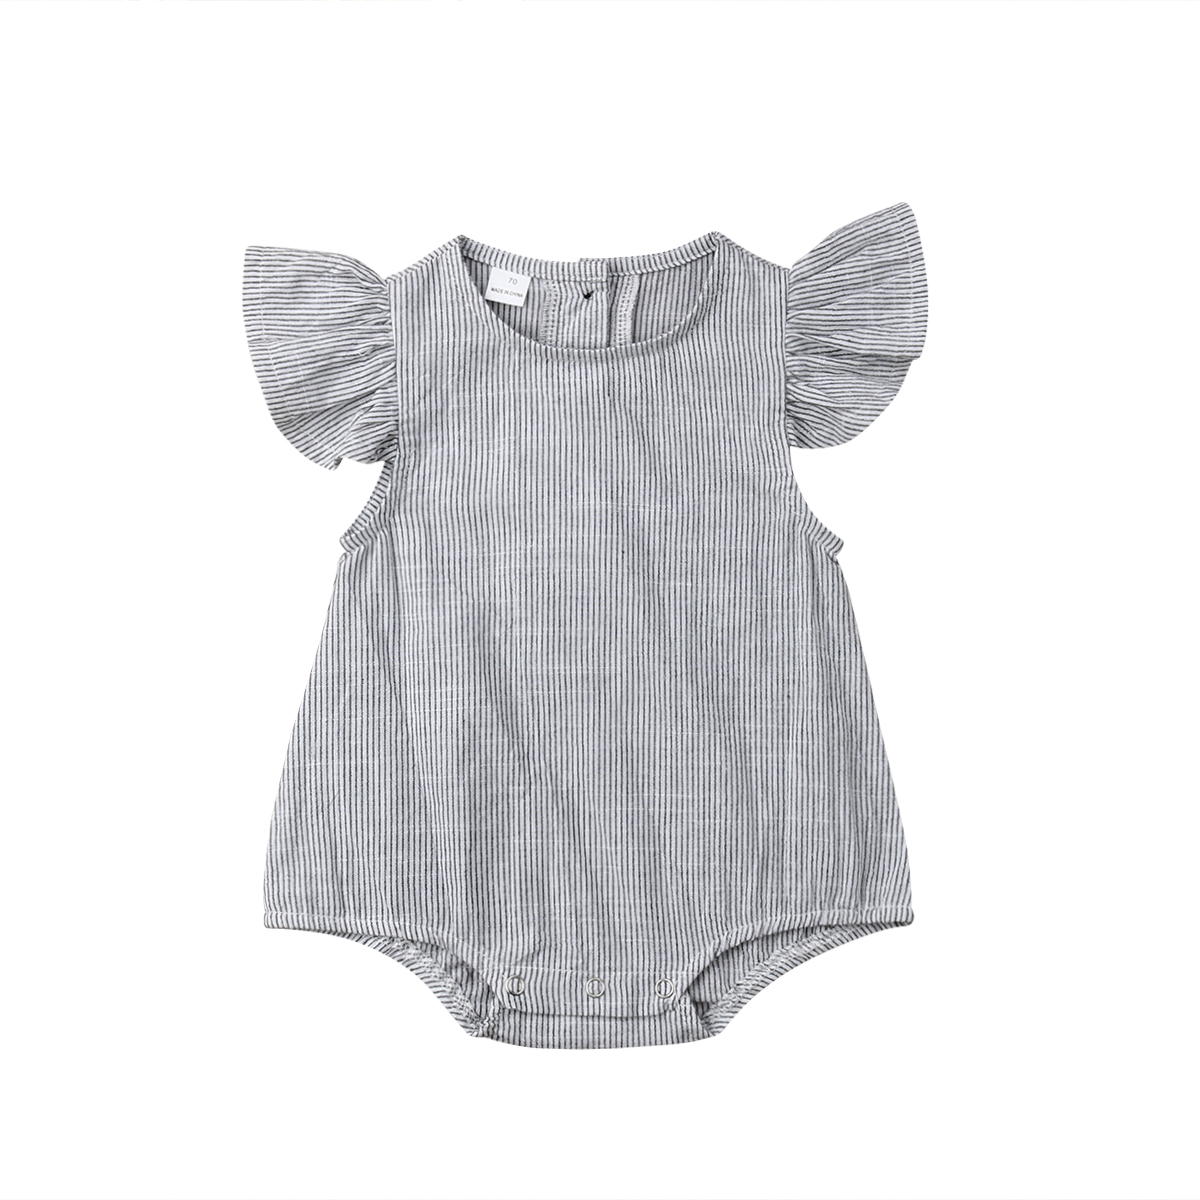 Summer Newborn Baby Girl Ruffles Sleeveless Grey Striped Cotton   Romper   Jumpsuit Outfits Baby Clothes